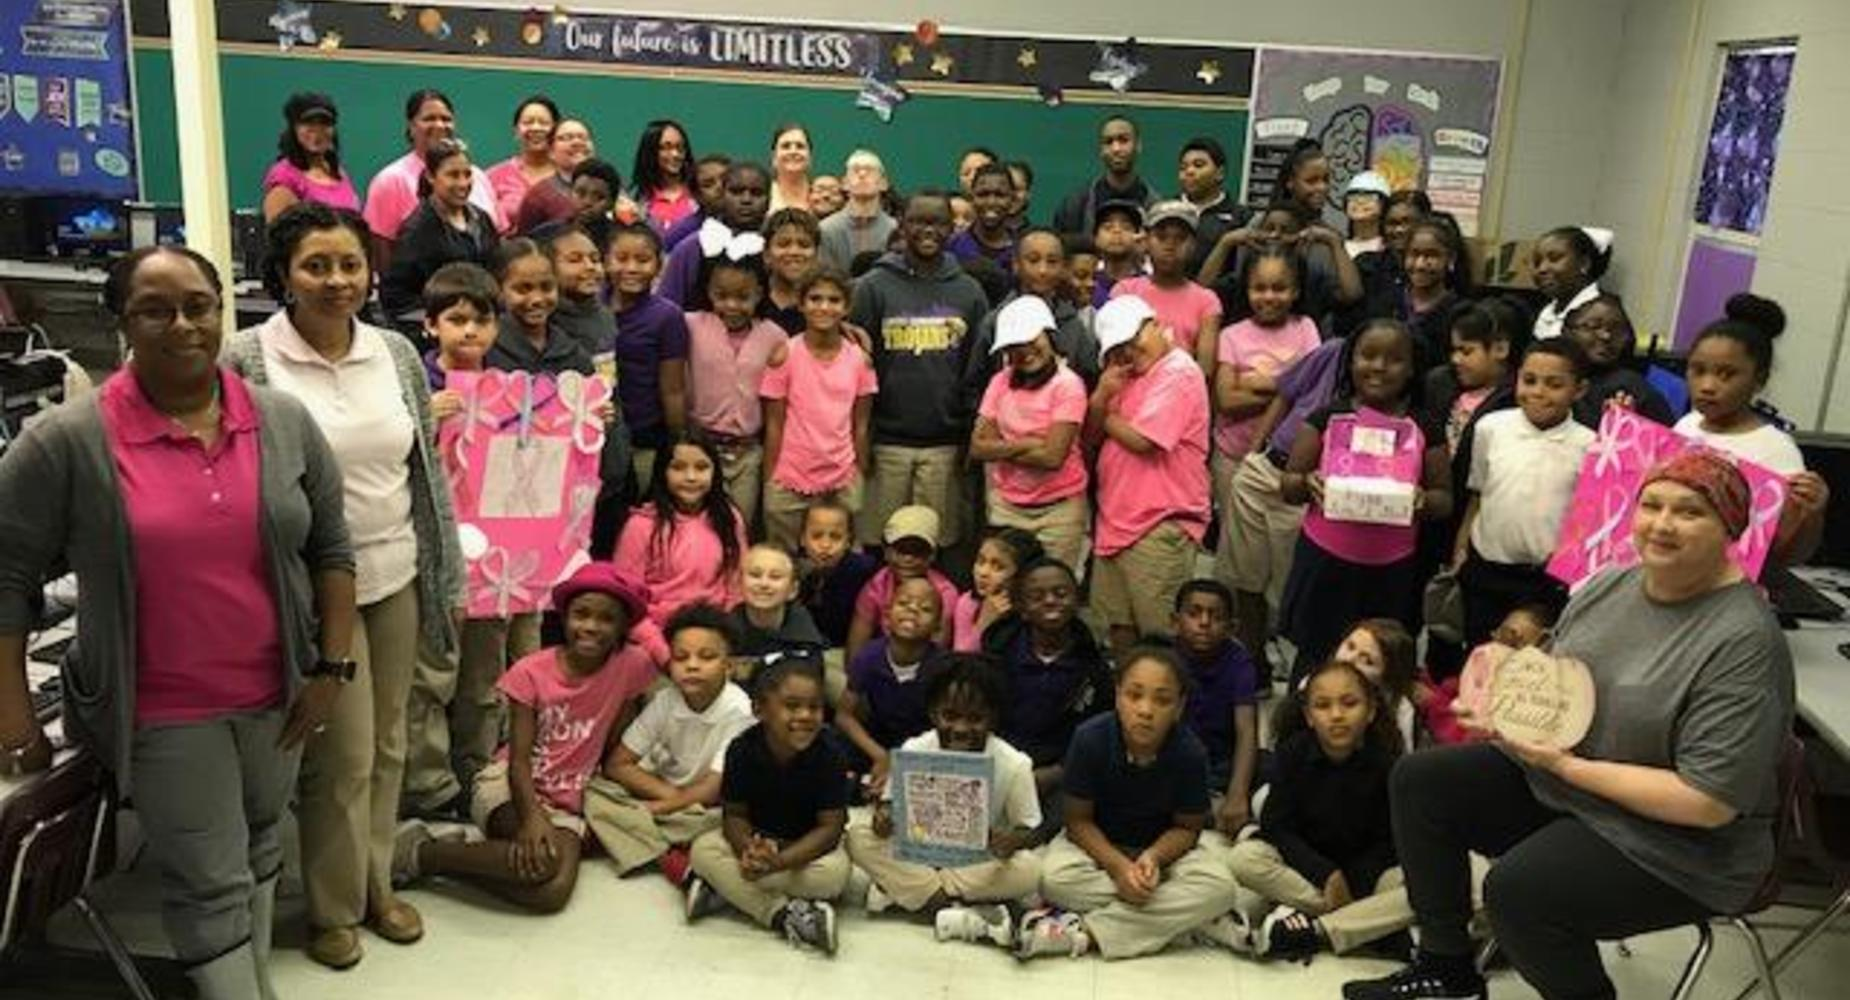 Lawtell Elementary Just One Word, Inc.  21st  Century Community Learning Center Program honored staff member Ms. Sikes for Breast Cancer Awareness Day.  Students and staff members presented gifts and words of encouragement to her as she continues to go through her journey with breast cancer.